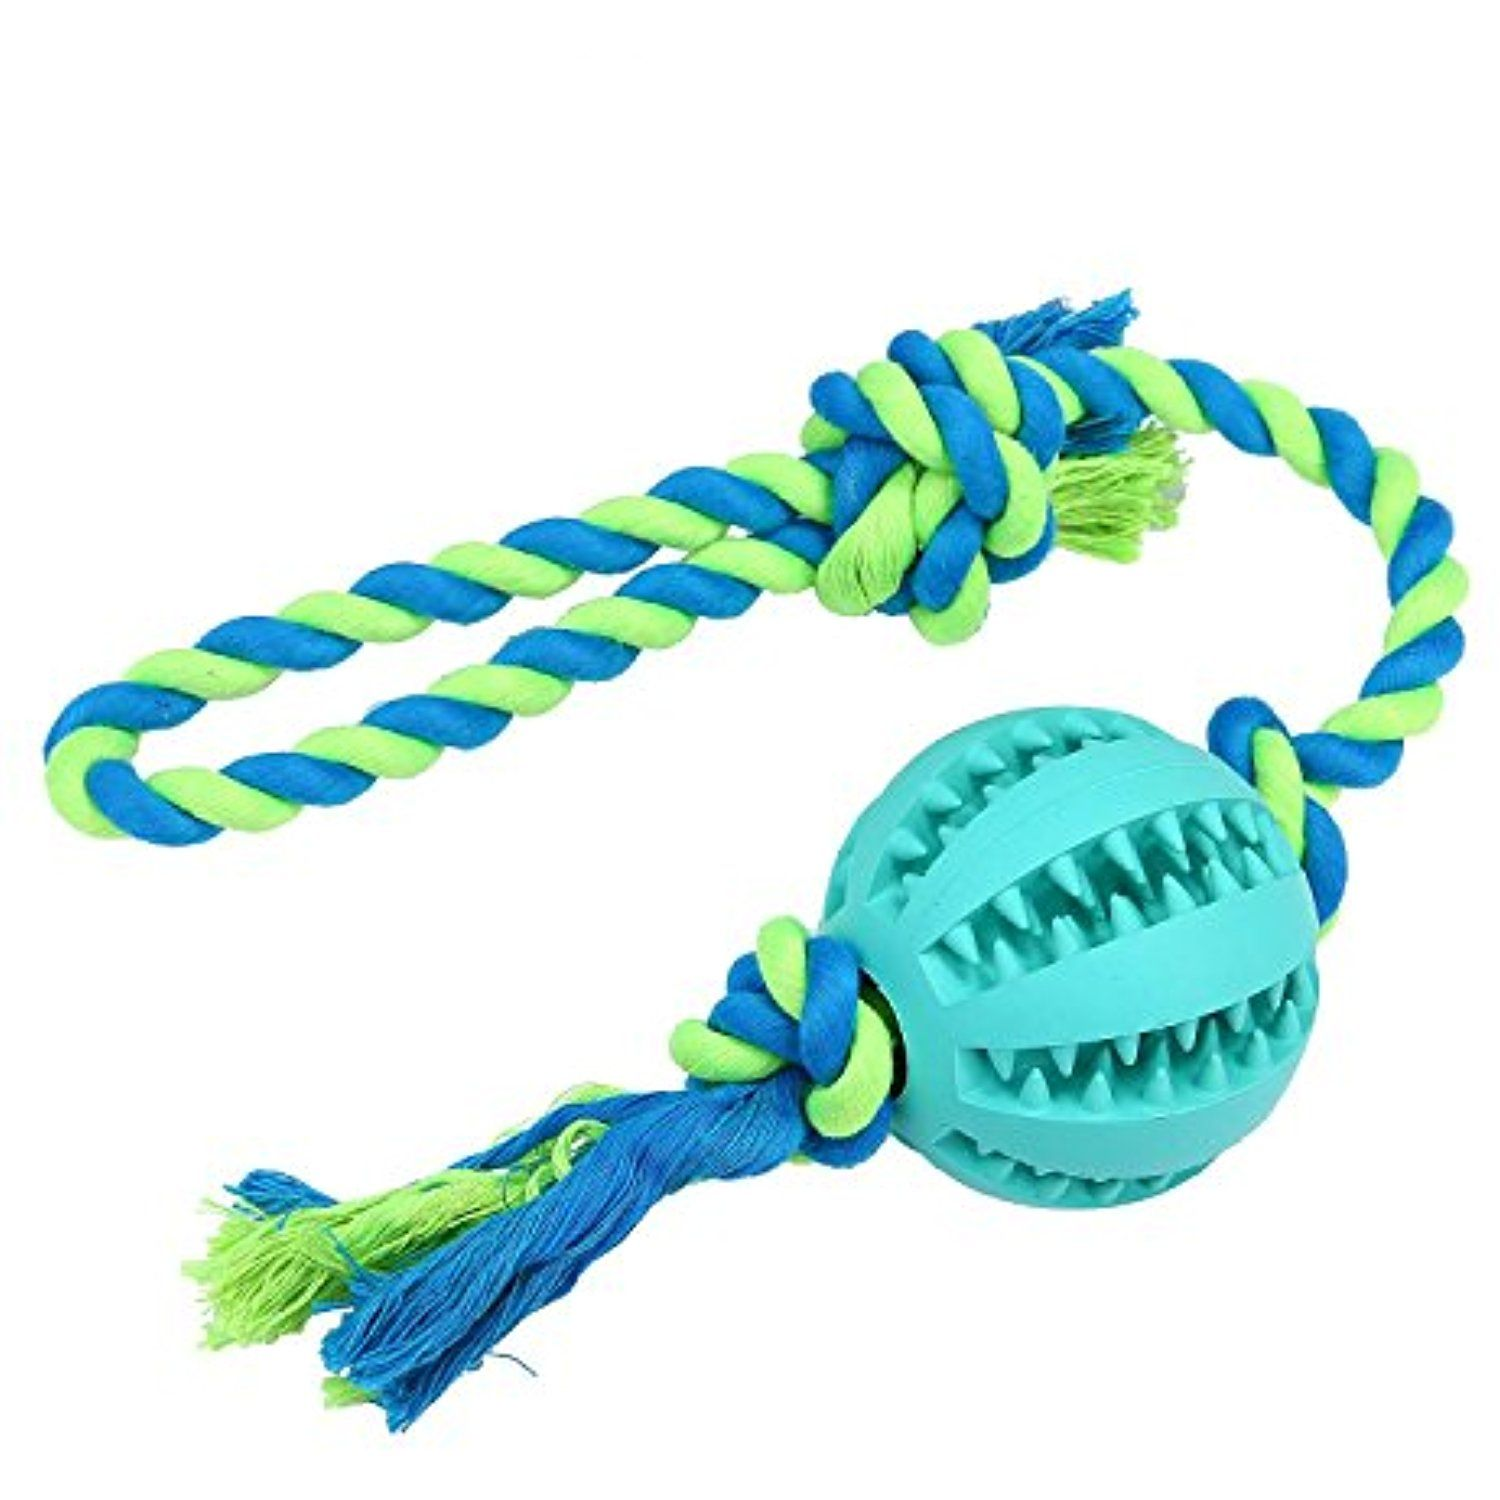 Niceeshop Tm Dog Rope Chew Toys With Ball Indestructible Dental